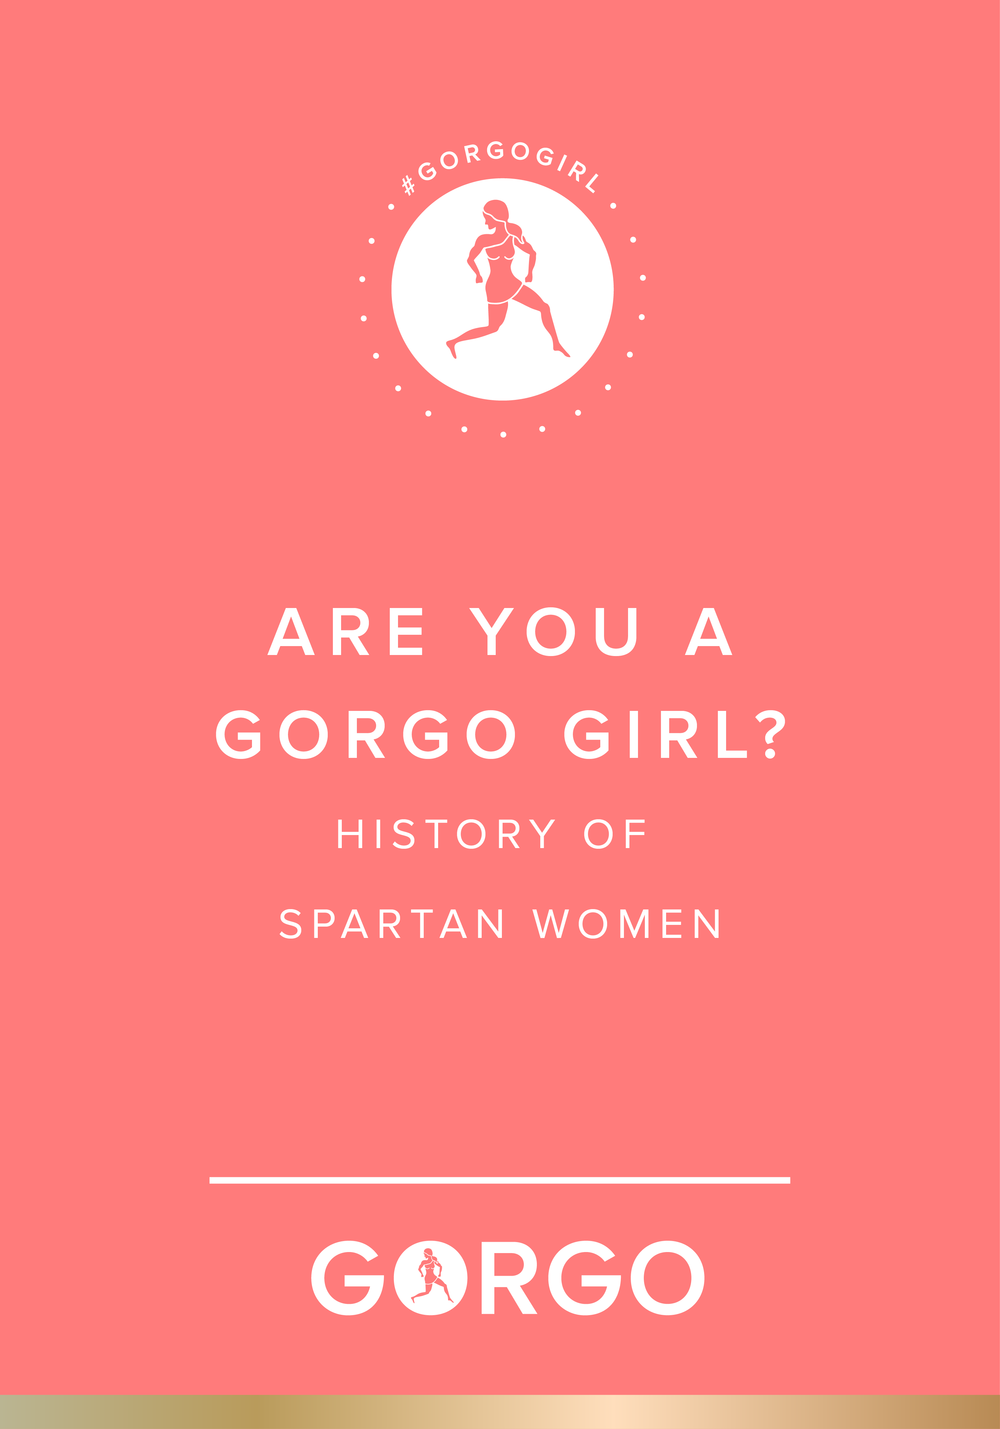 Are you a GORGO Girl? History of Spartan Women #gorgogirl